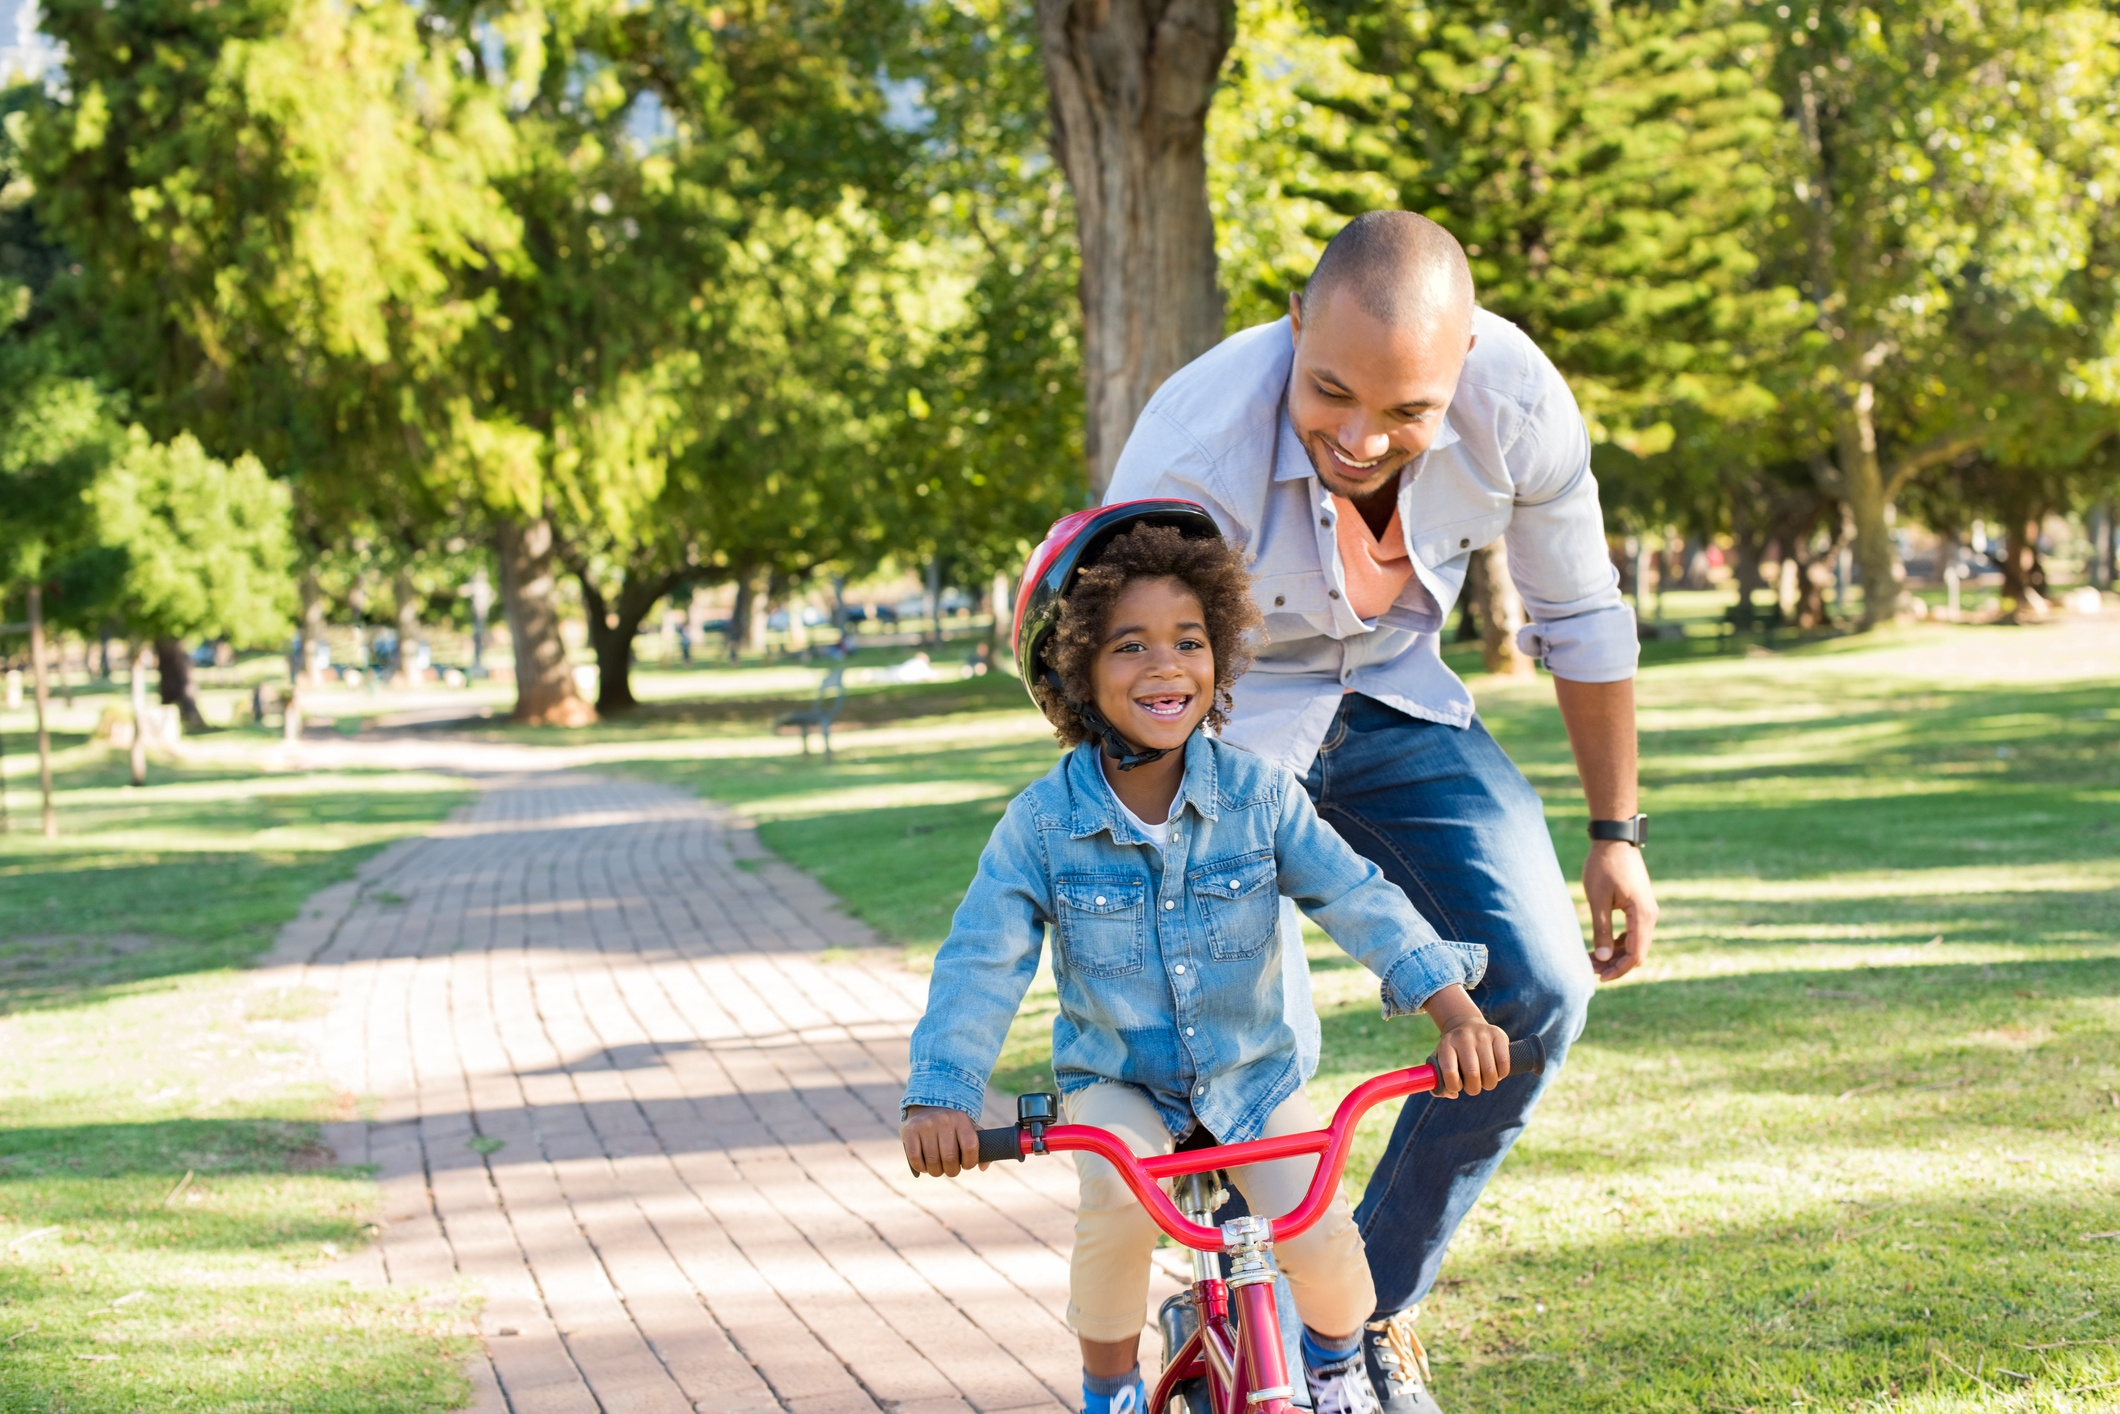 Father teaching son cycling in a park